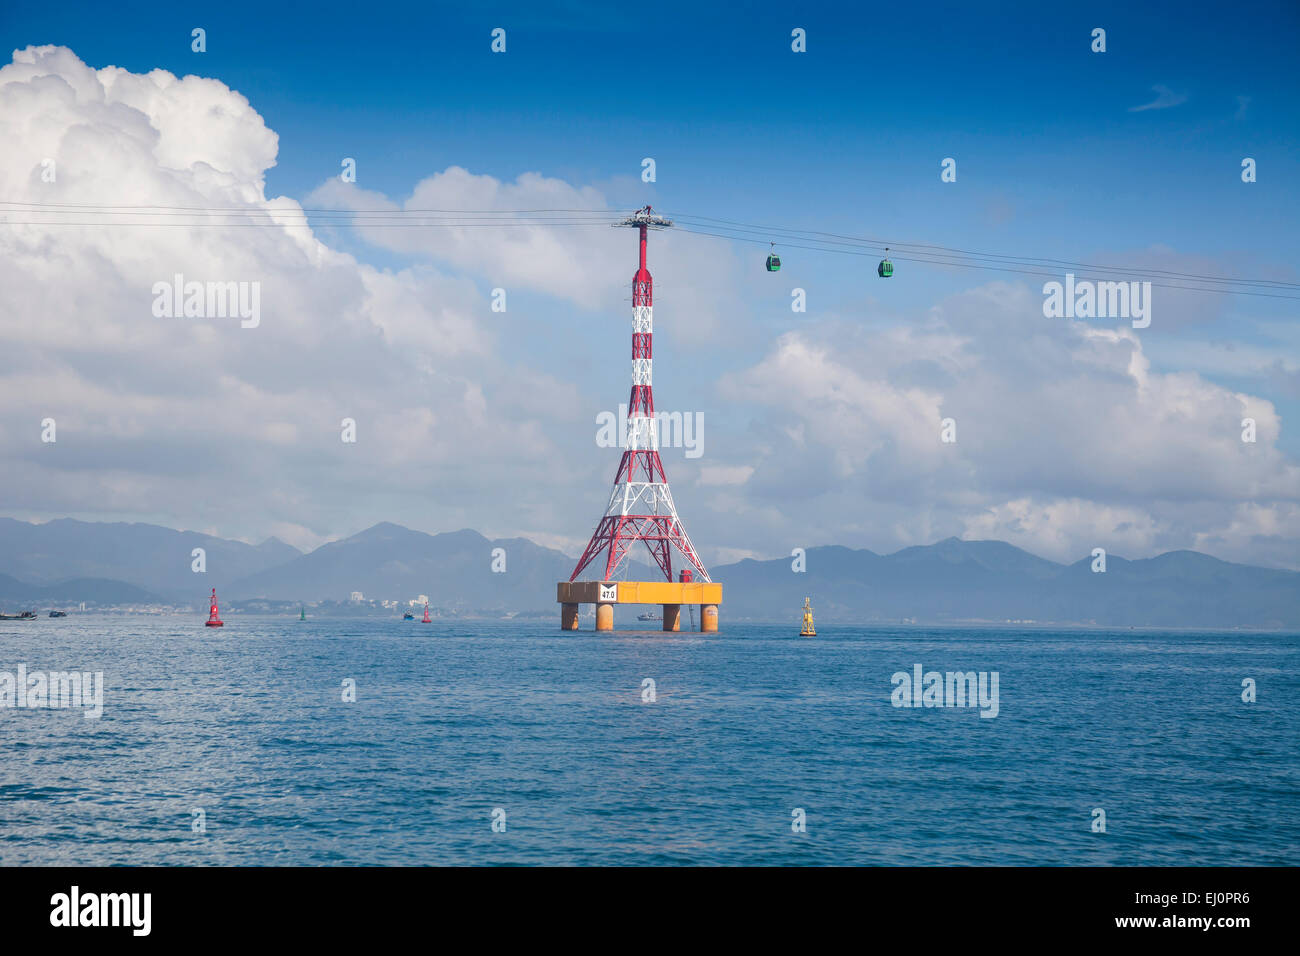 Vinpearl, island, Nha, Trang, South Vietnam, architecture, water, gondola, aerial, cable railway, transportation, - Stock Image